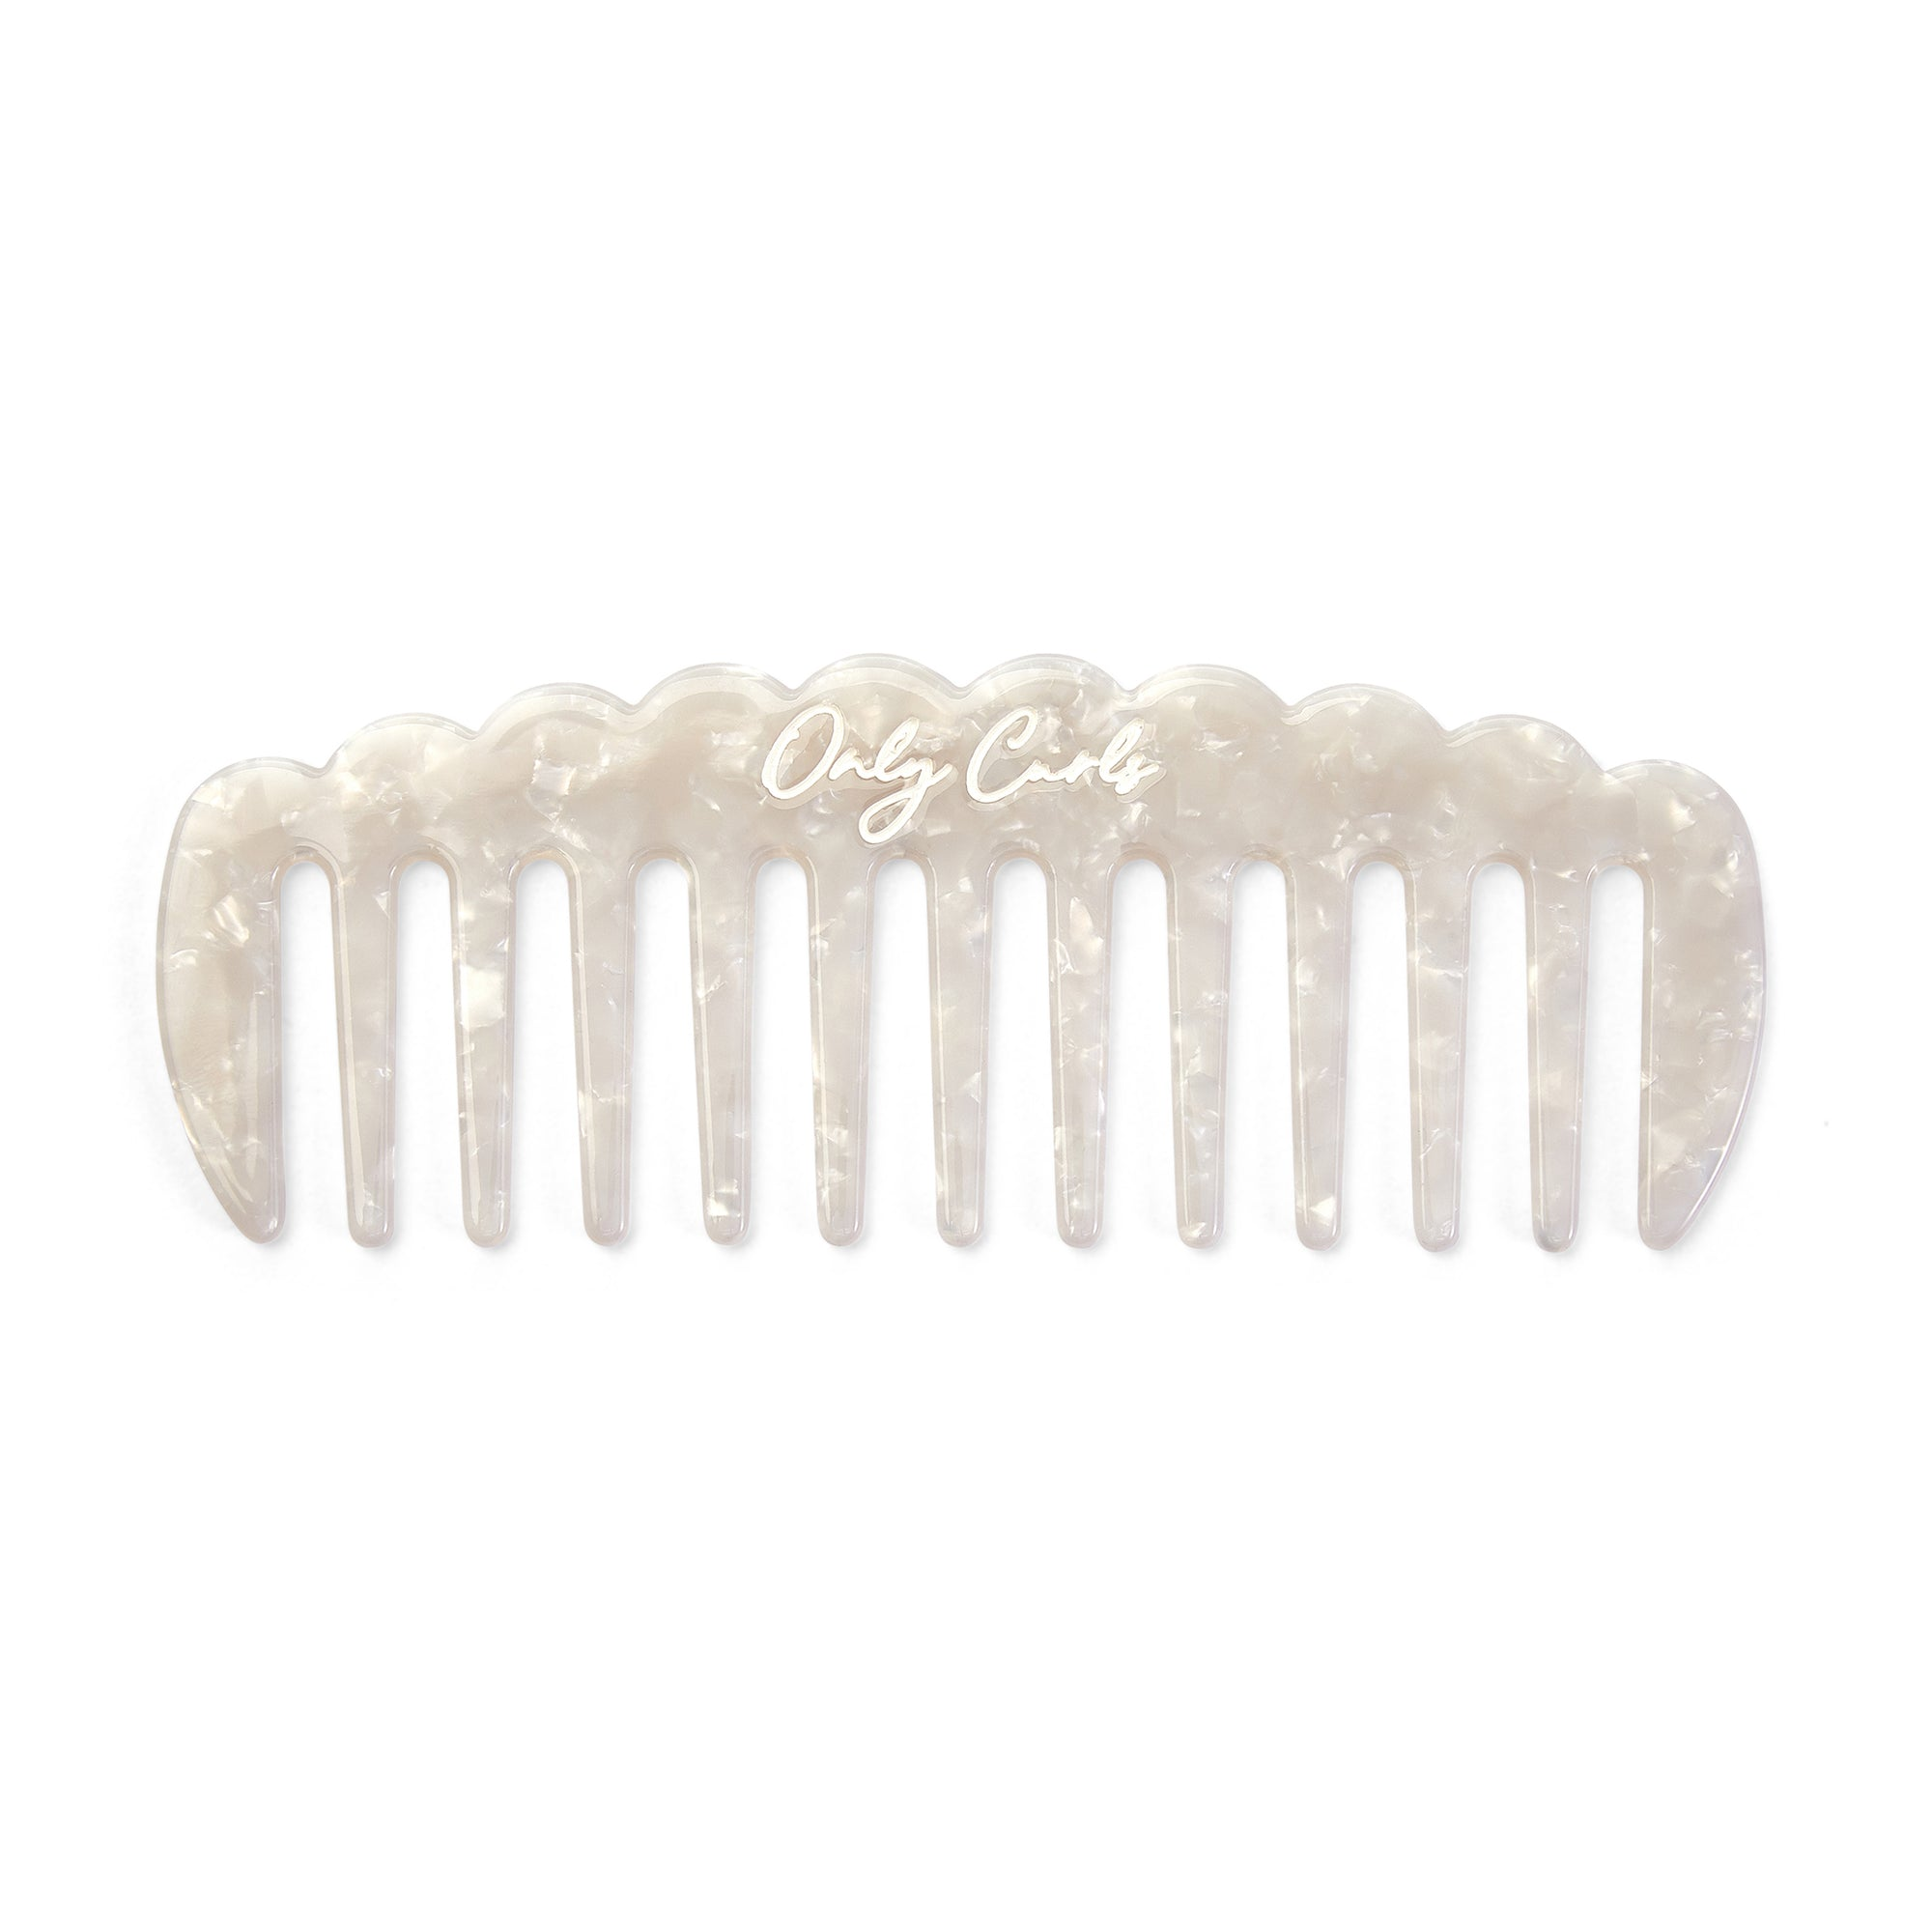 Only Curls White Shimmer Comb - Only Curls